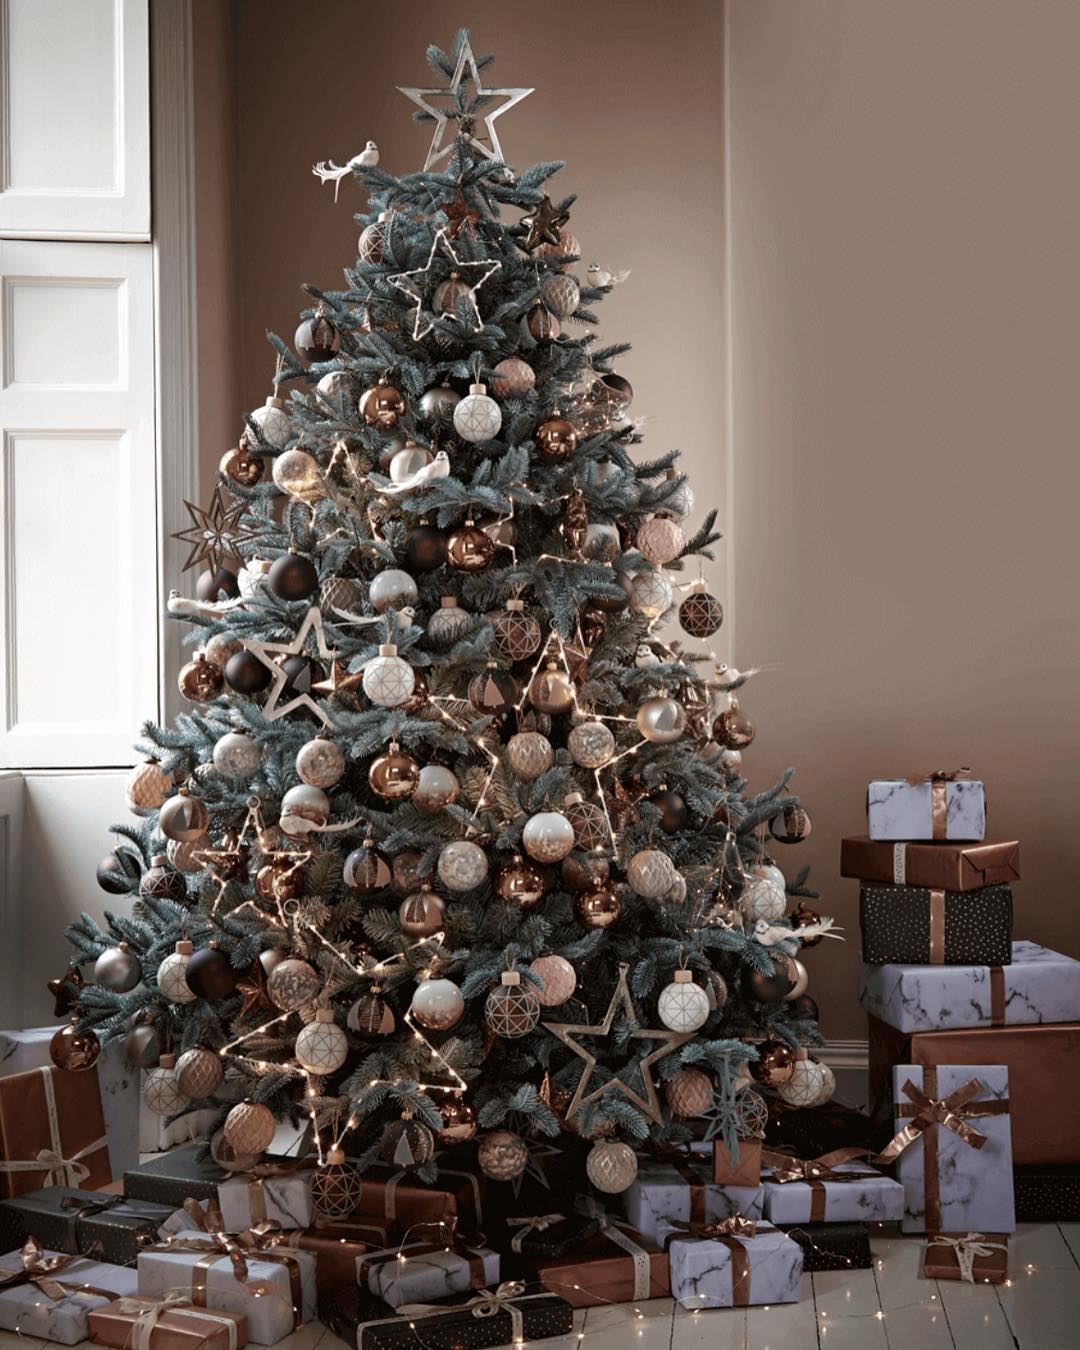 Top 12 Beautiful Christmas Tree Decorations Gazzed